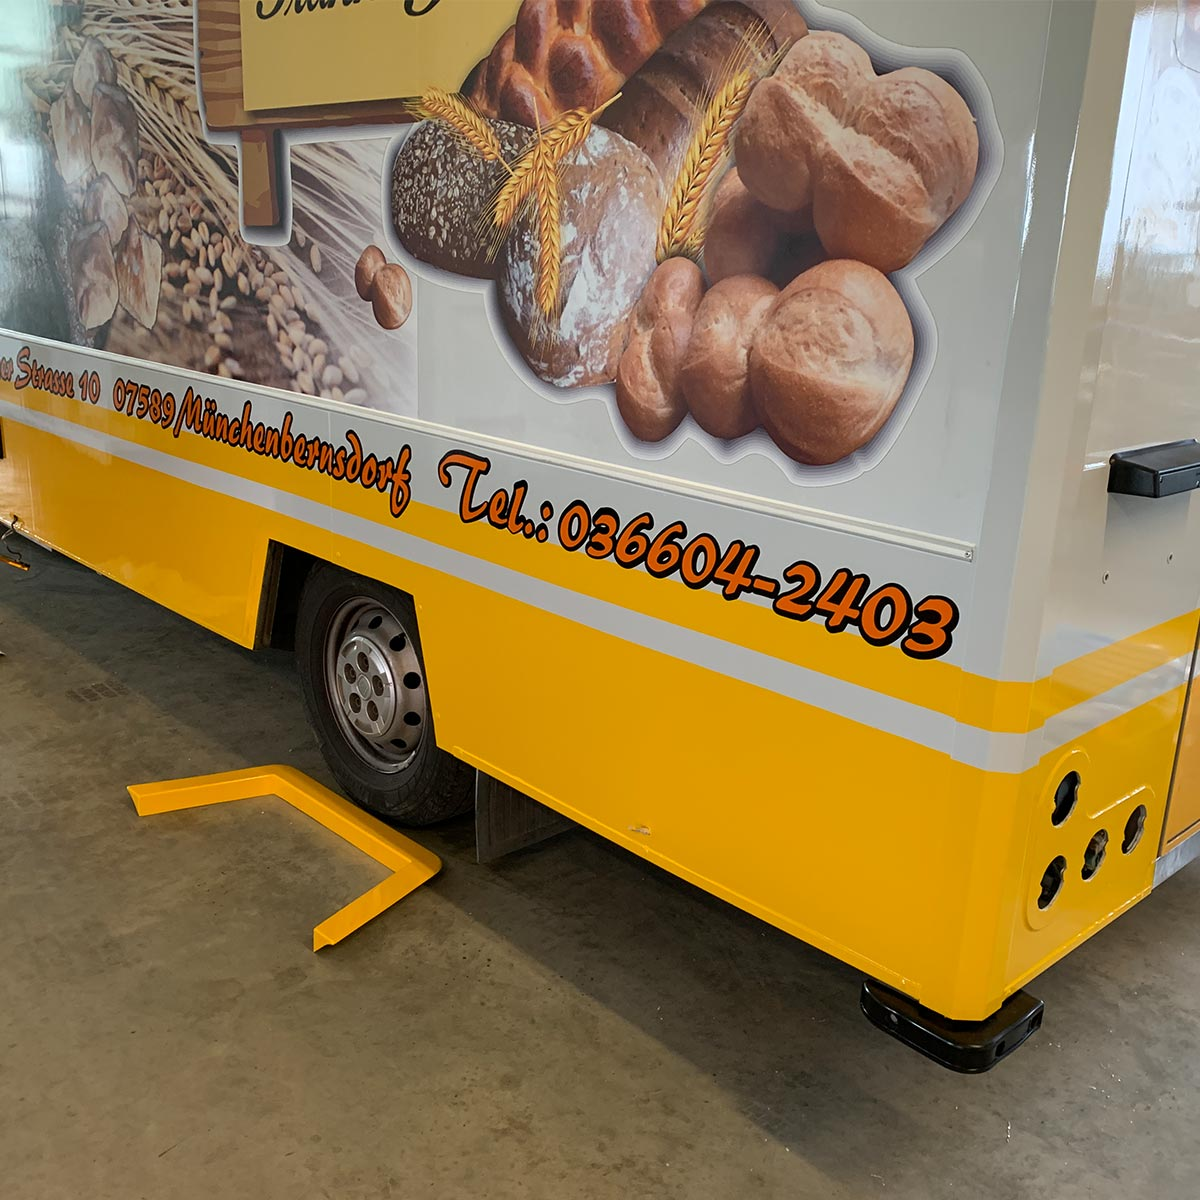 Foodtruck-001.jpg